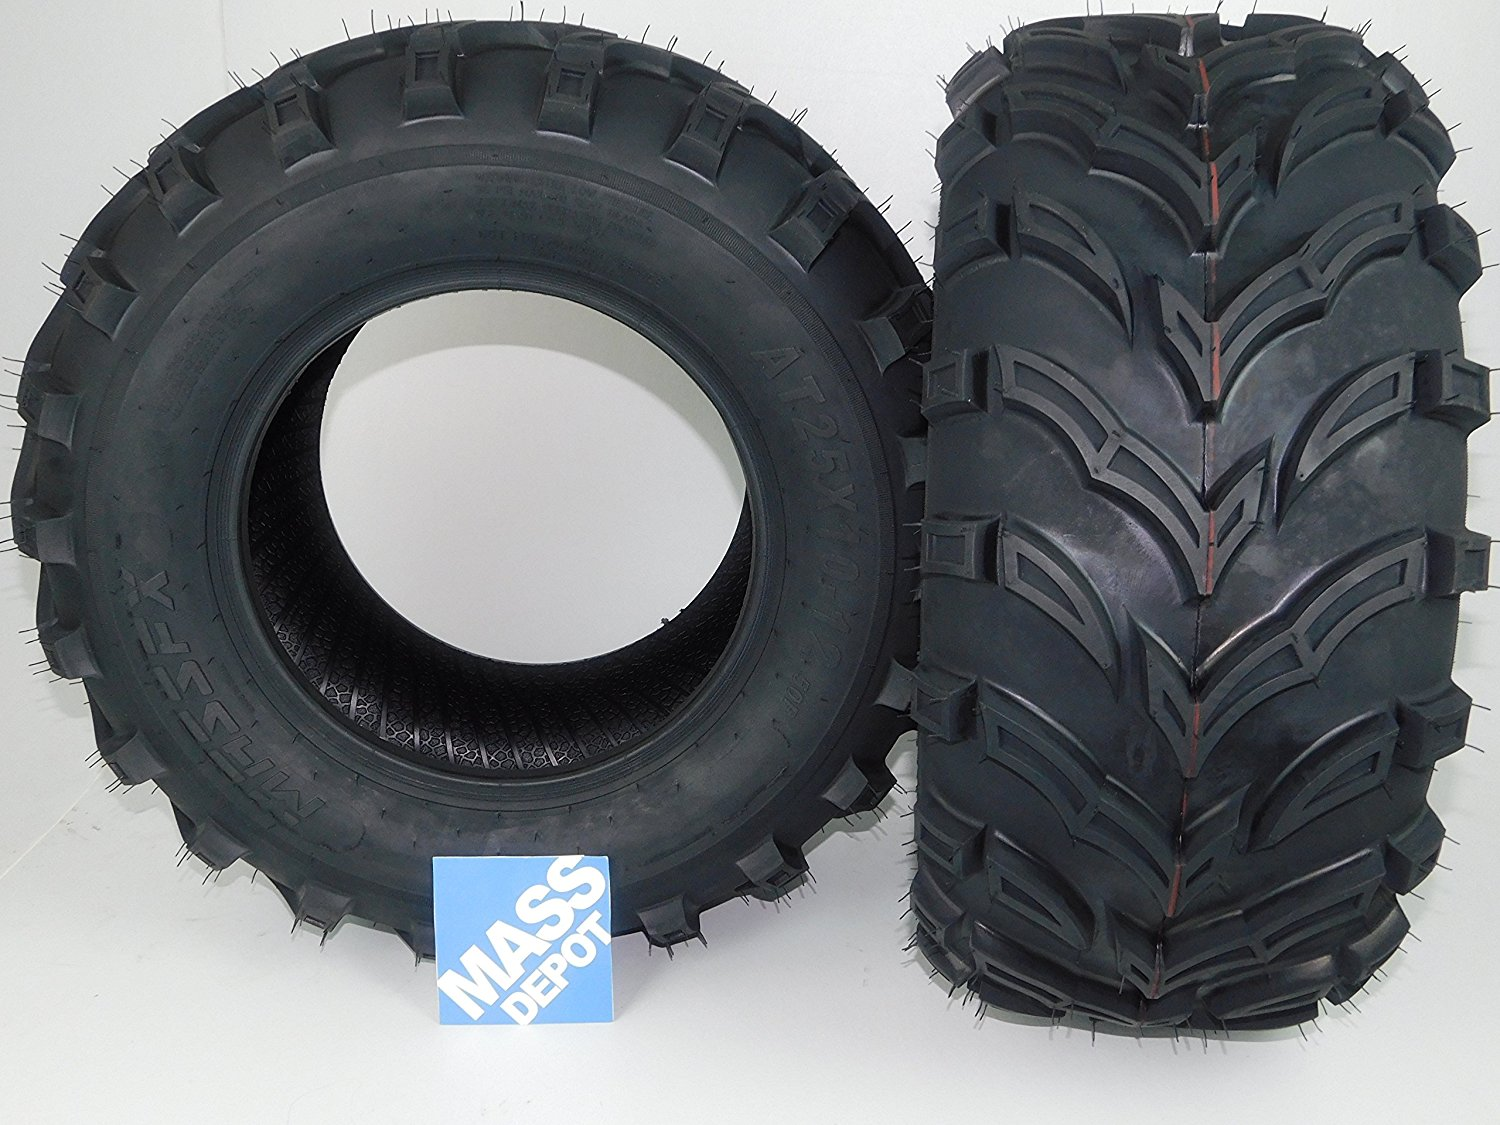 New MASSFX MS ATV/UTV Tires 25 x10-12 Rear, Set of 2 25x10x12 25x10/12